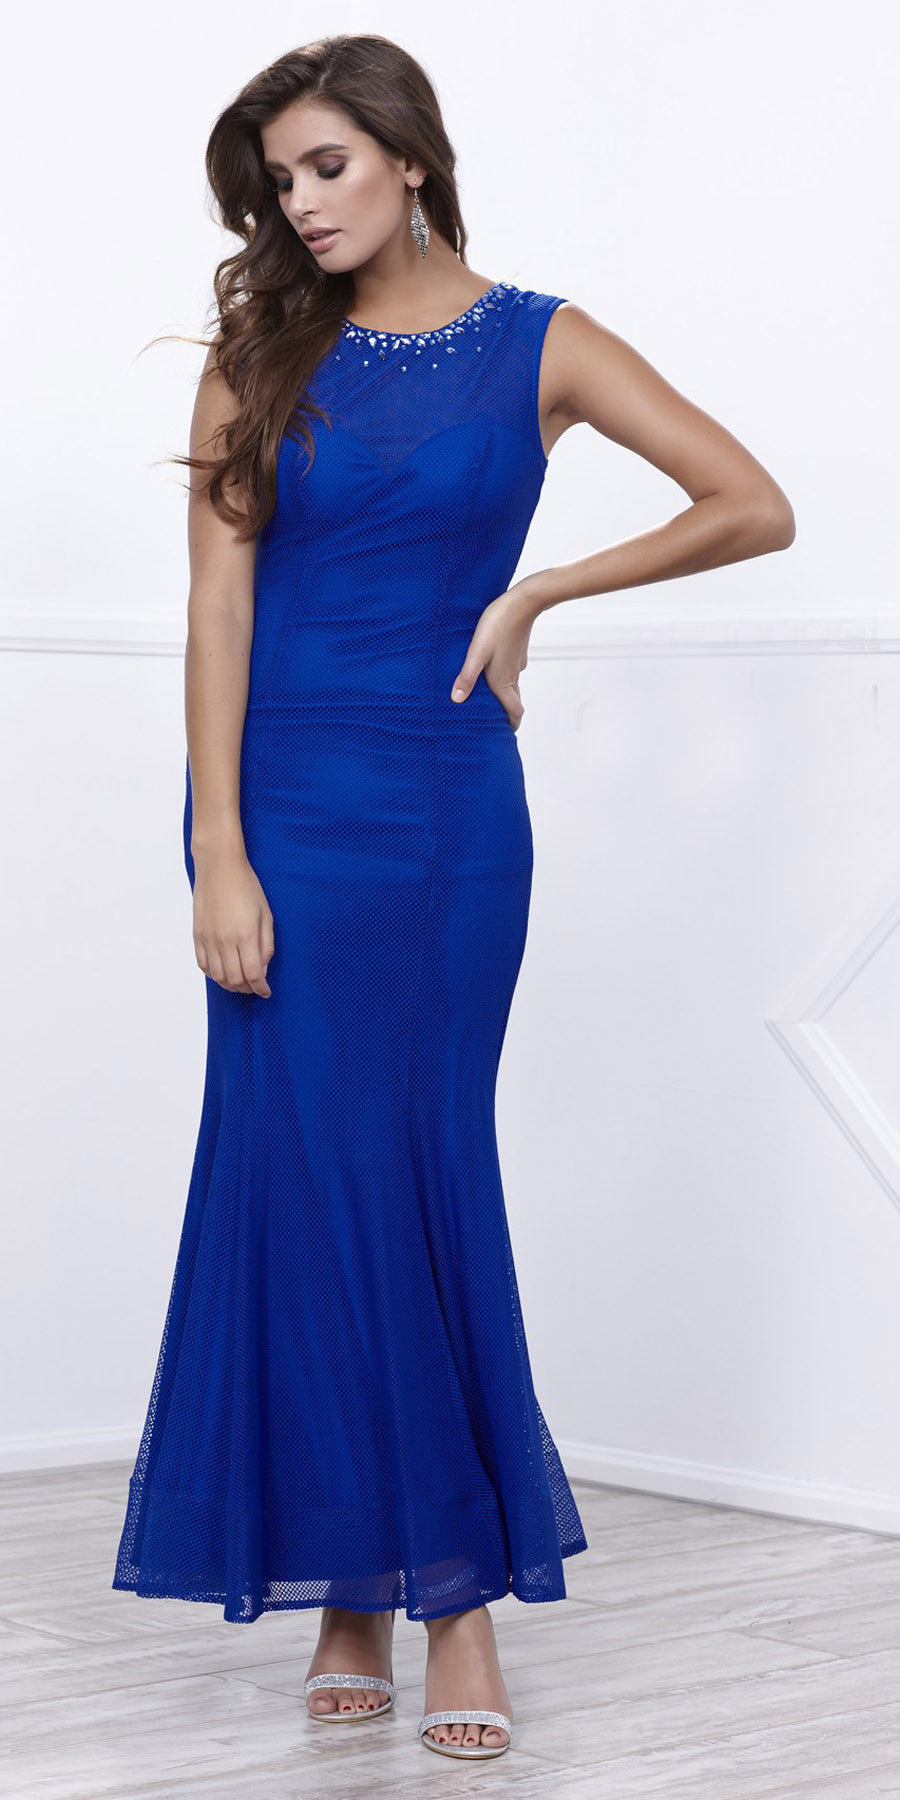 Jeweled Neckline Fit and Flare Sleeveless Gown Royal Blue